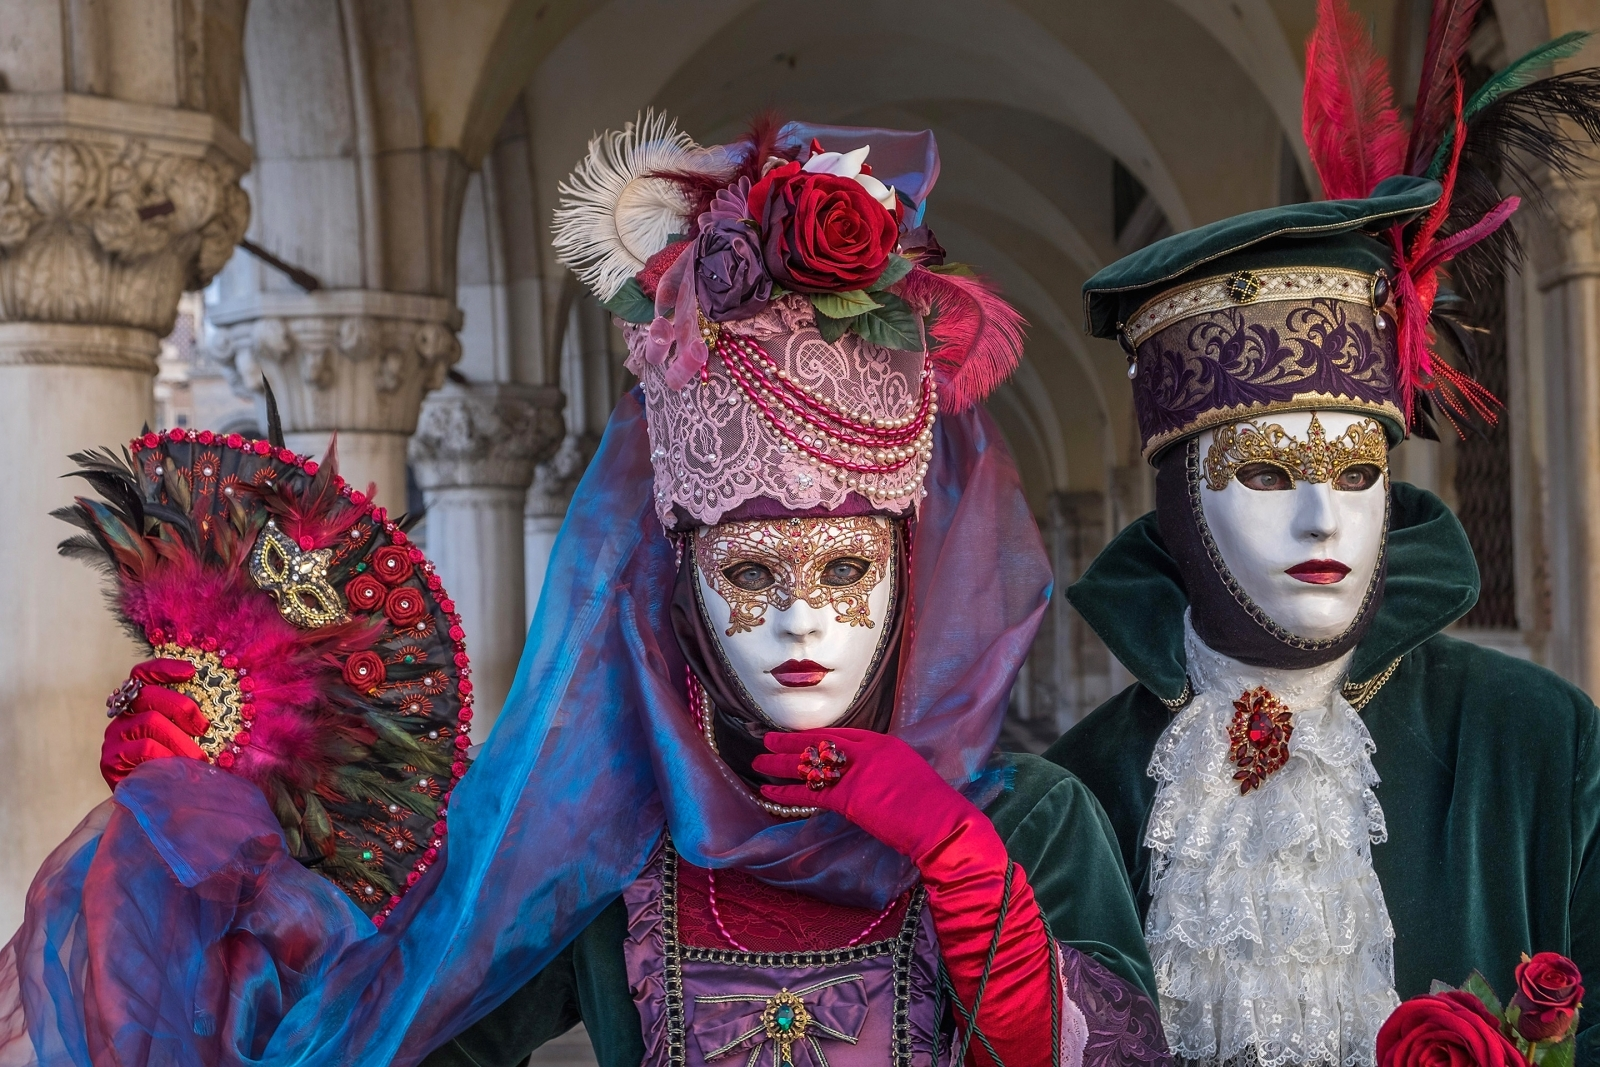 Venice Carnival 2018 best costumes  sc 1 st  IBTimes UK & Venice Carnival 2018 photos: Best costumes and masks at this yearu0027s ...